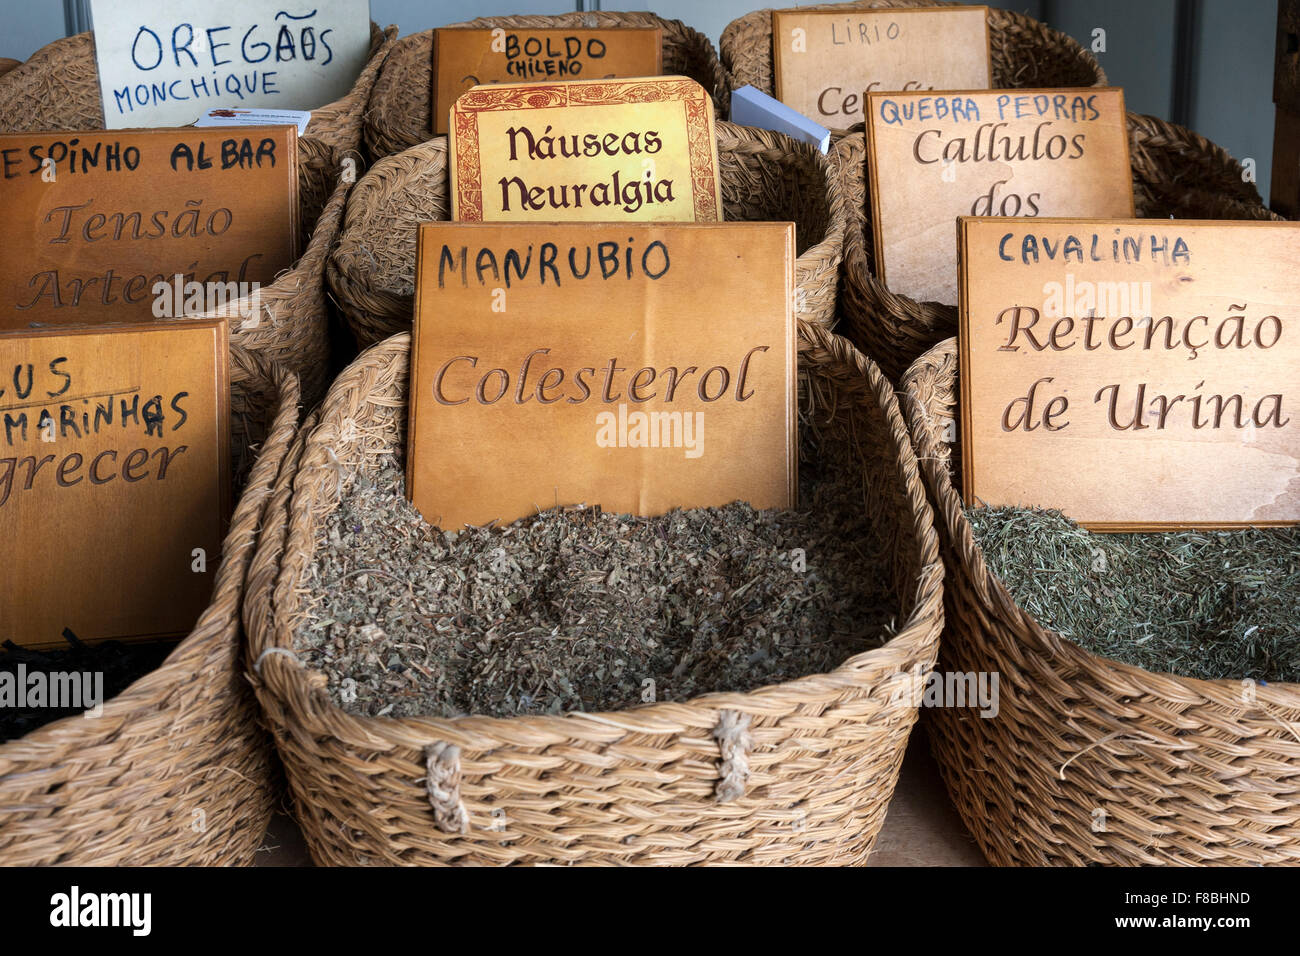 Herbal medicines in baskets. Portuguese language. Stock Photo